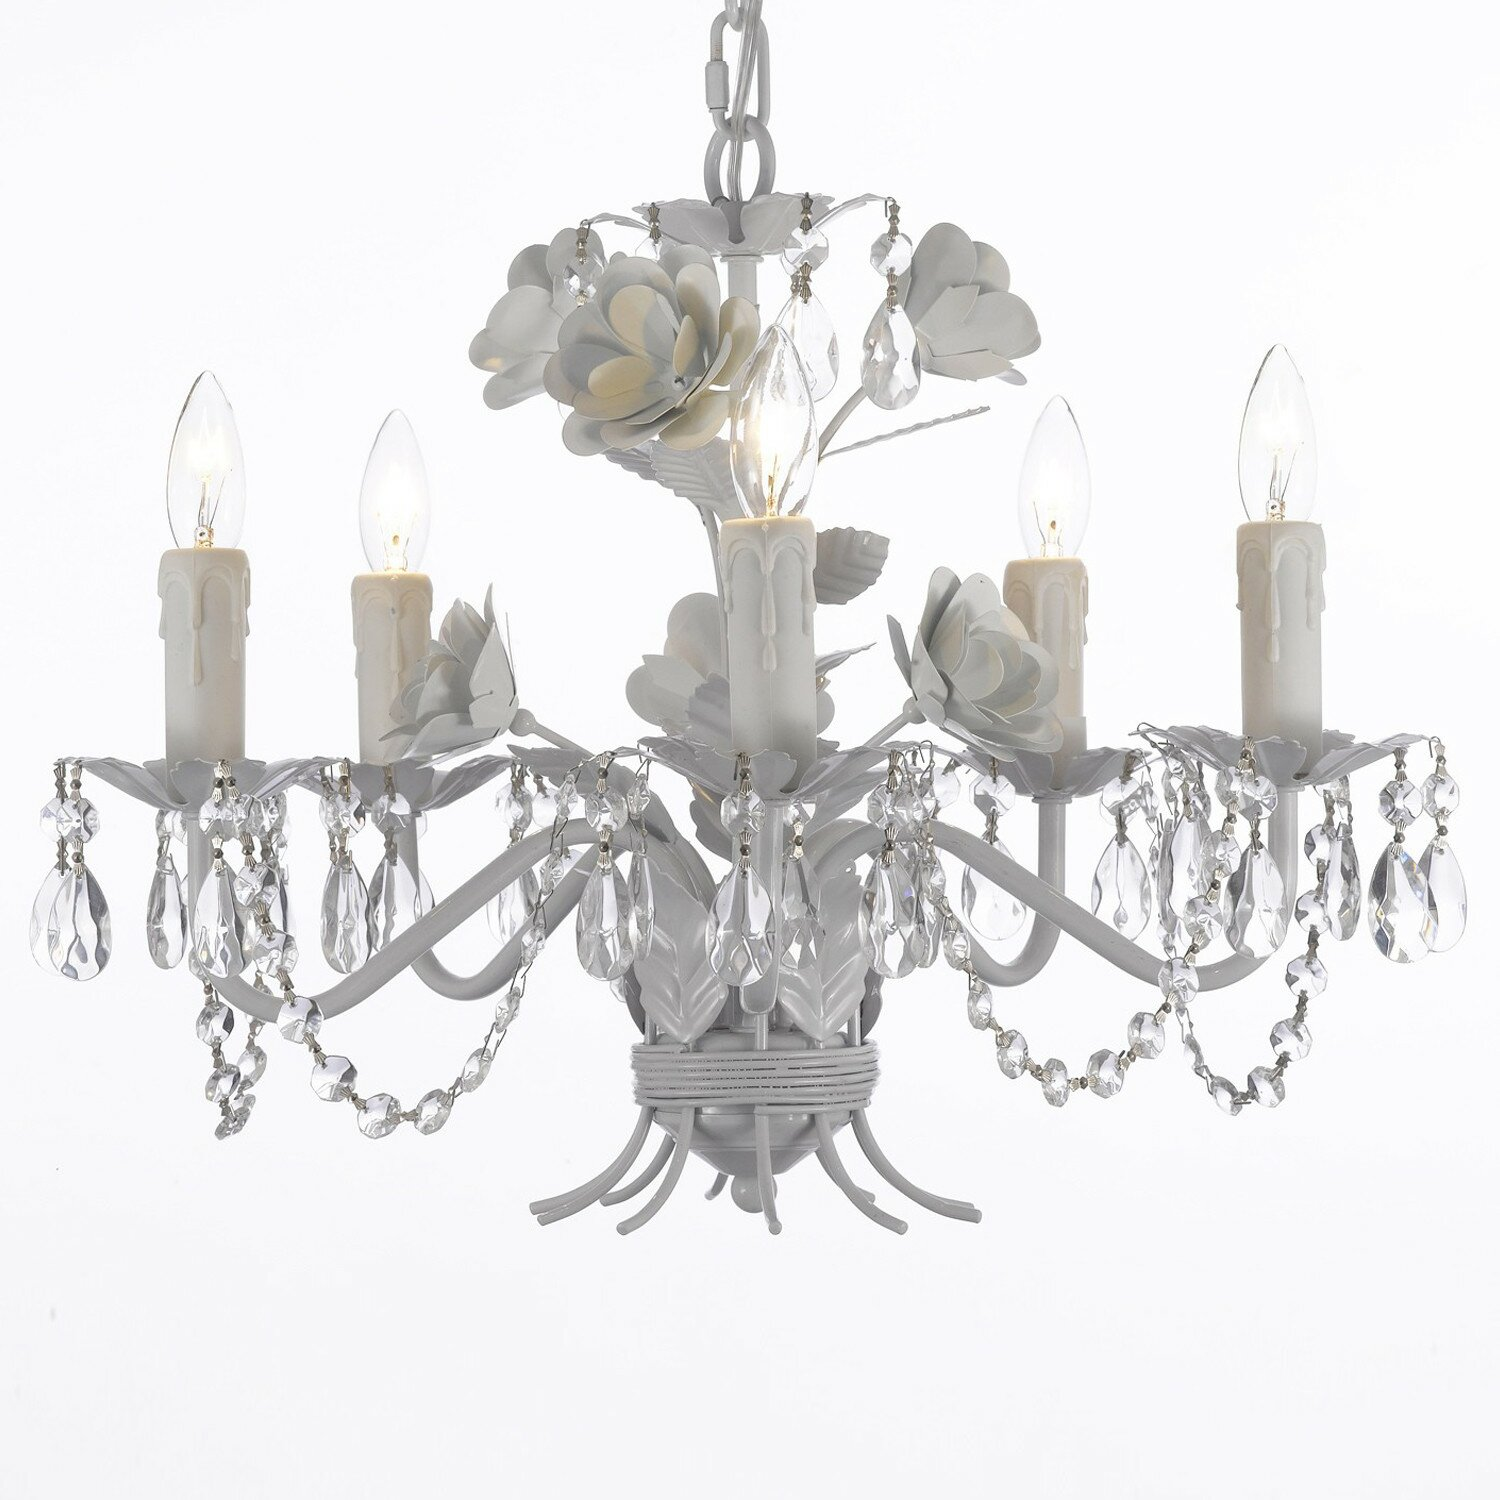 Harrison Lane Garden 5 Light Crystal Chandelier Reviews Wayfair